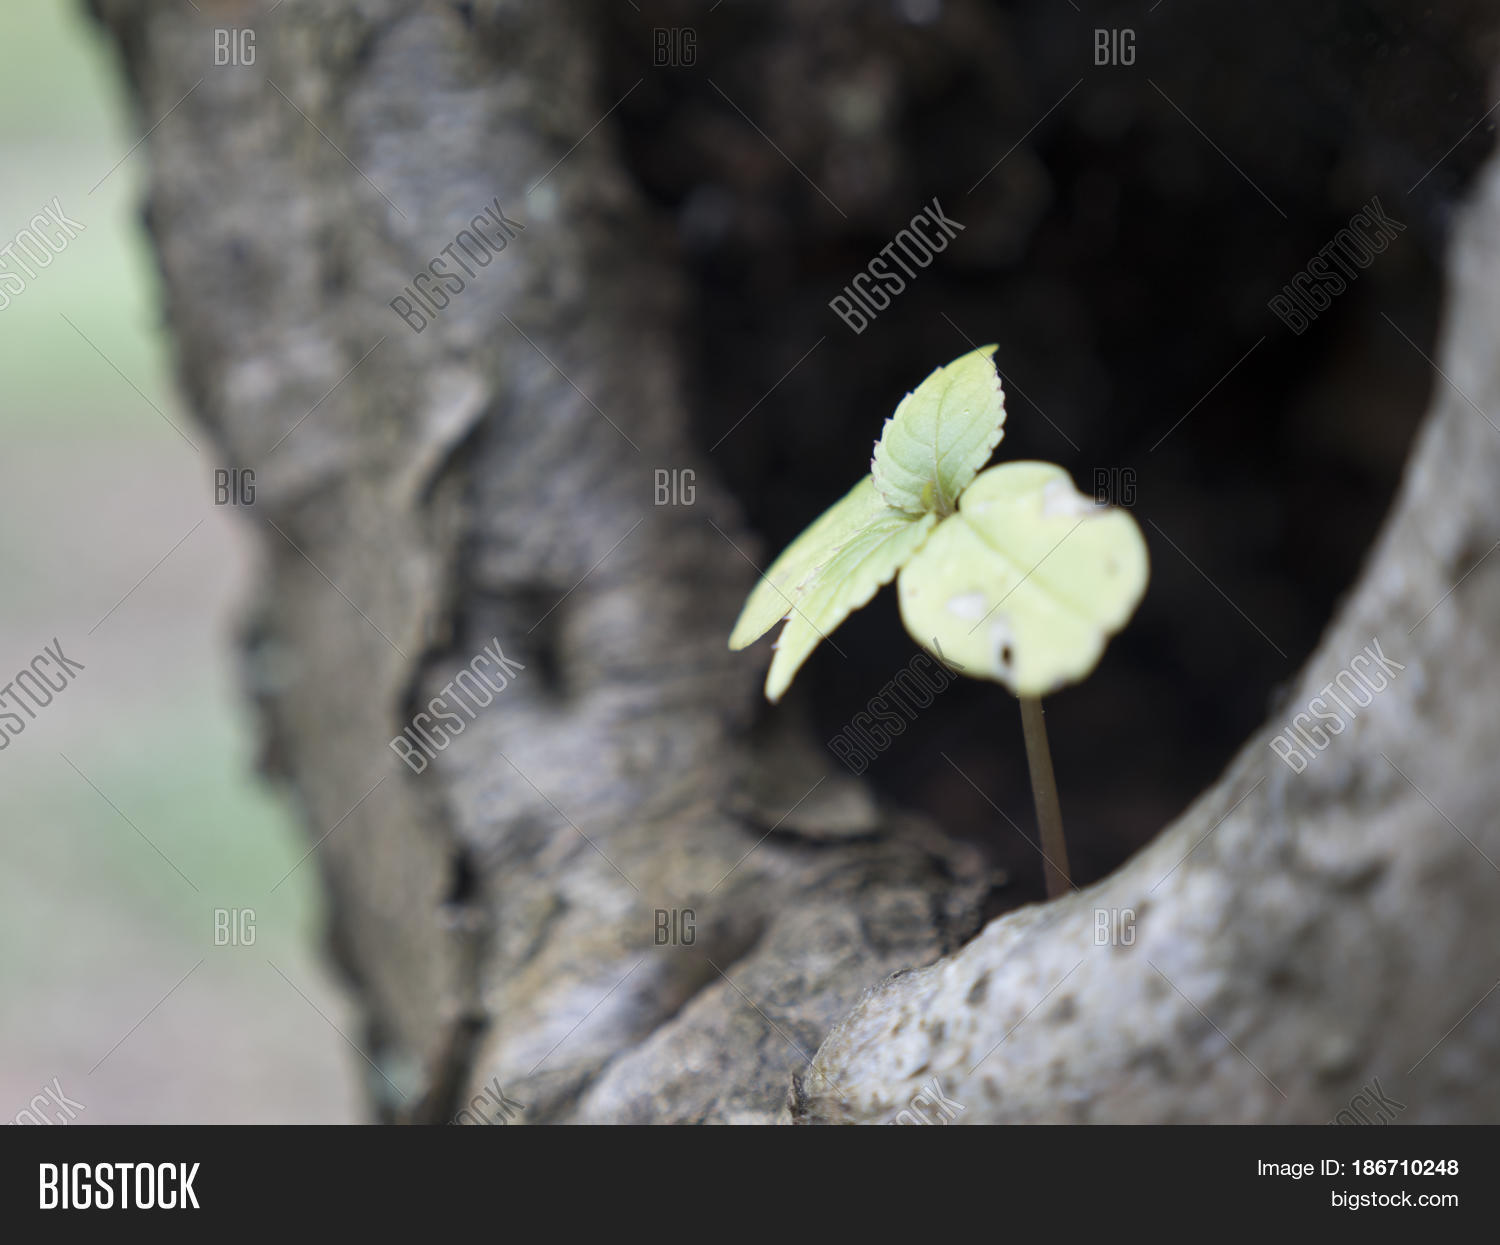 Small Sprouting Plant Image Photo Free Trial Bigstock